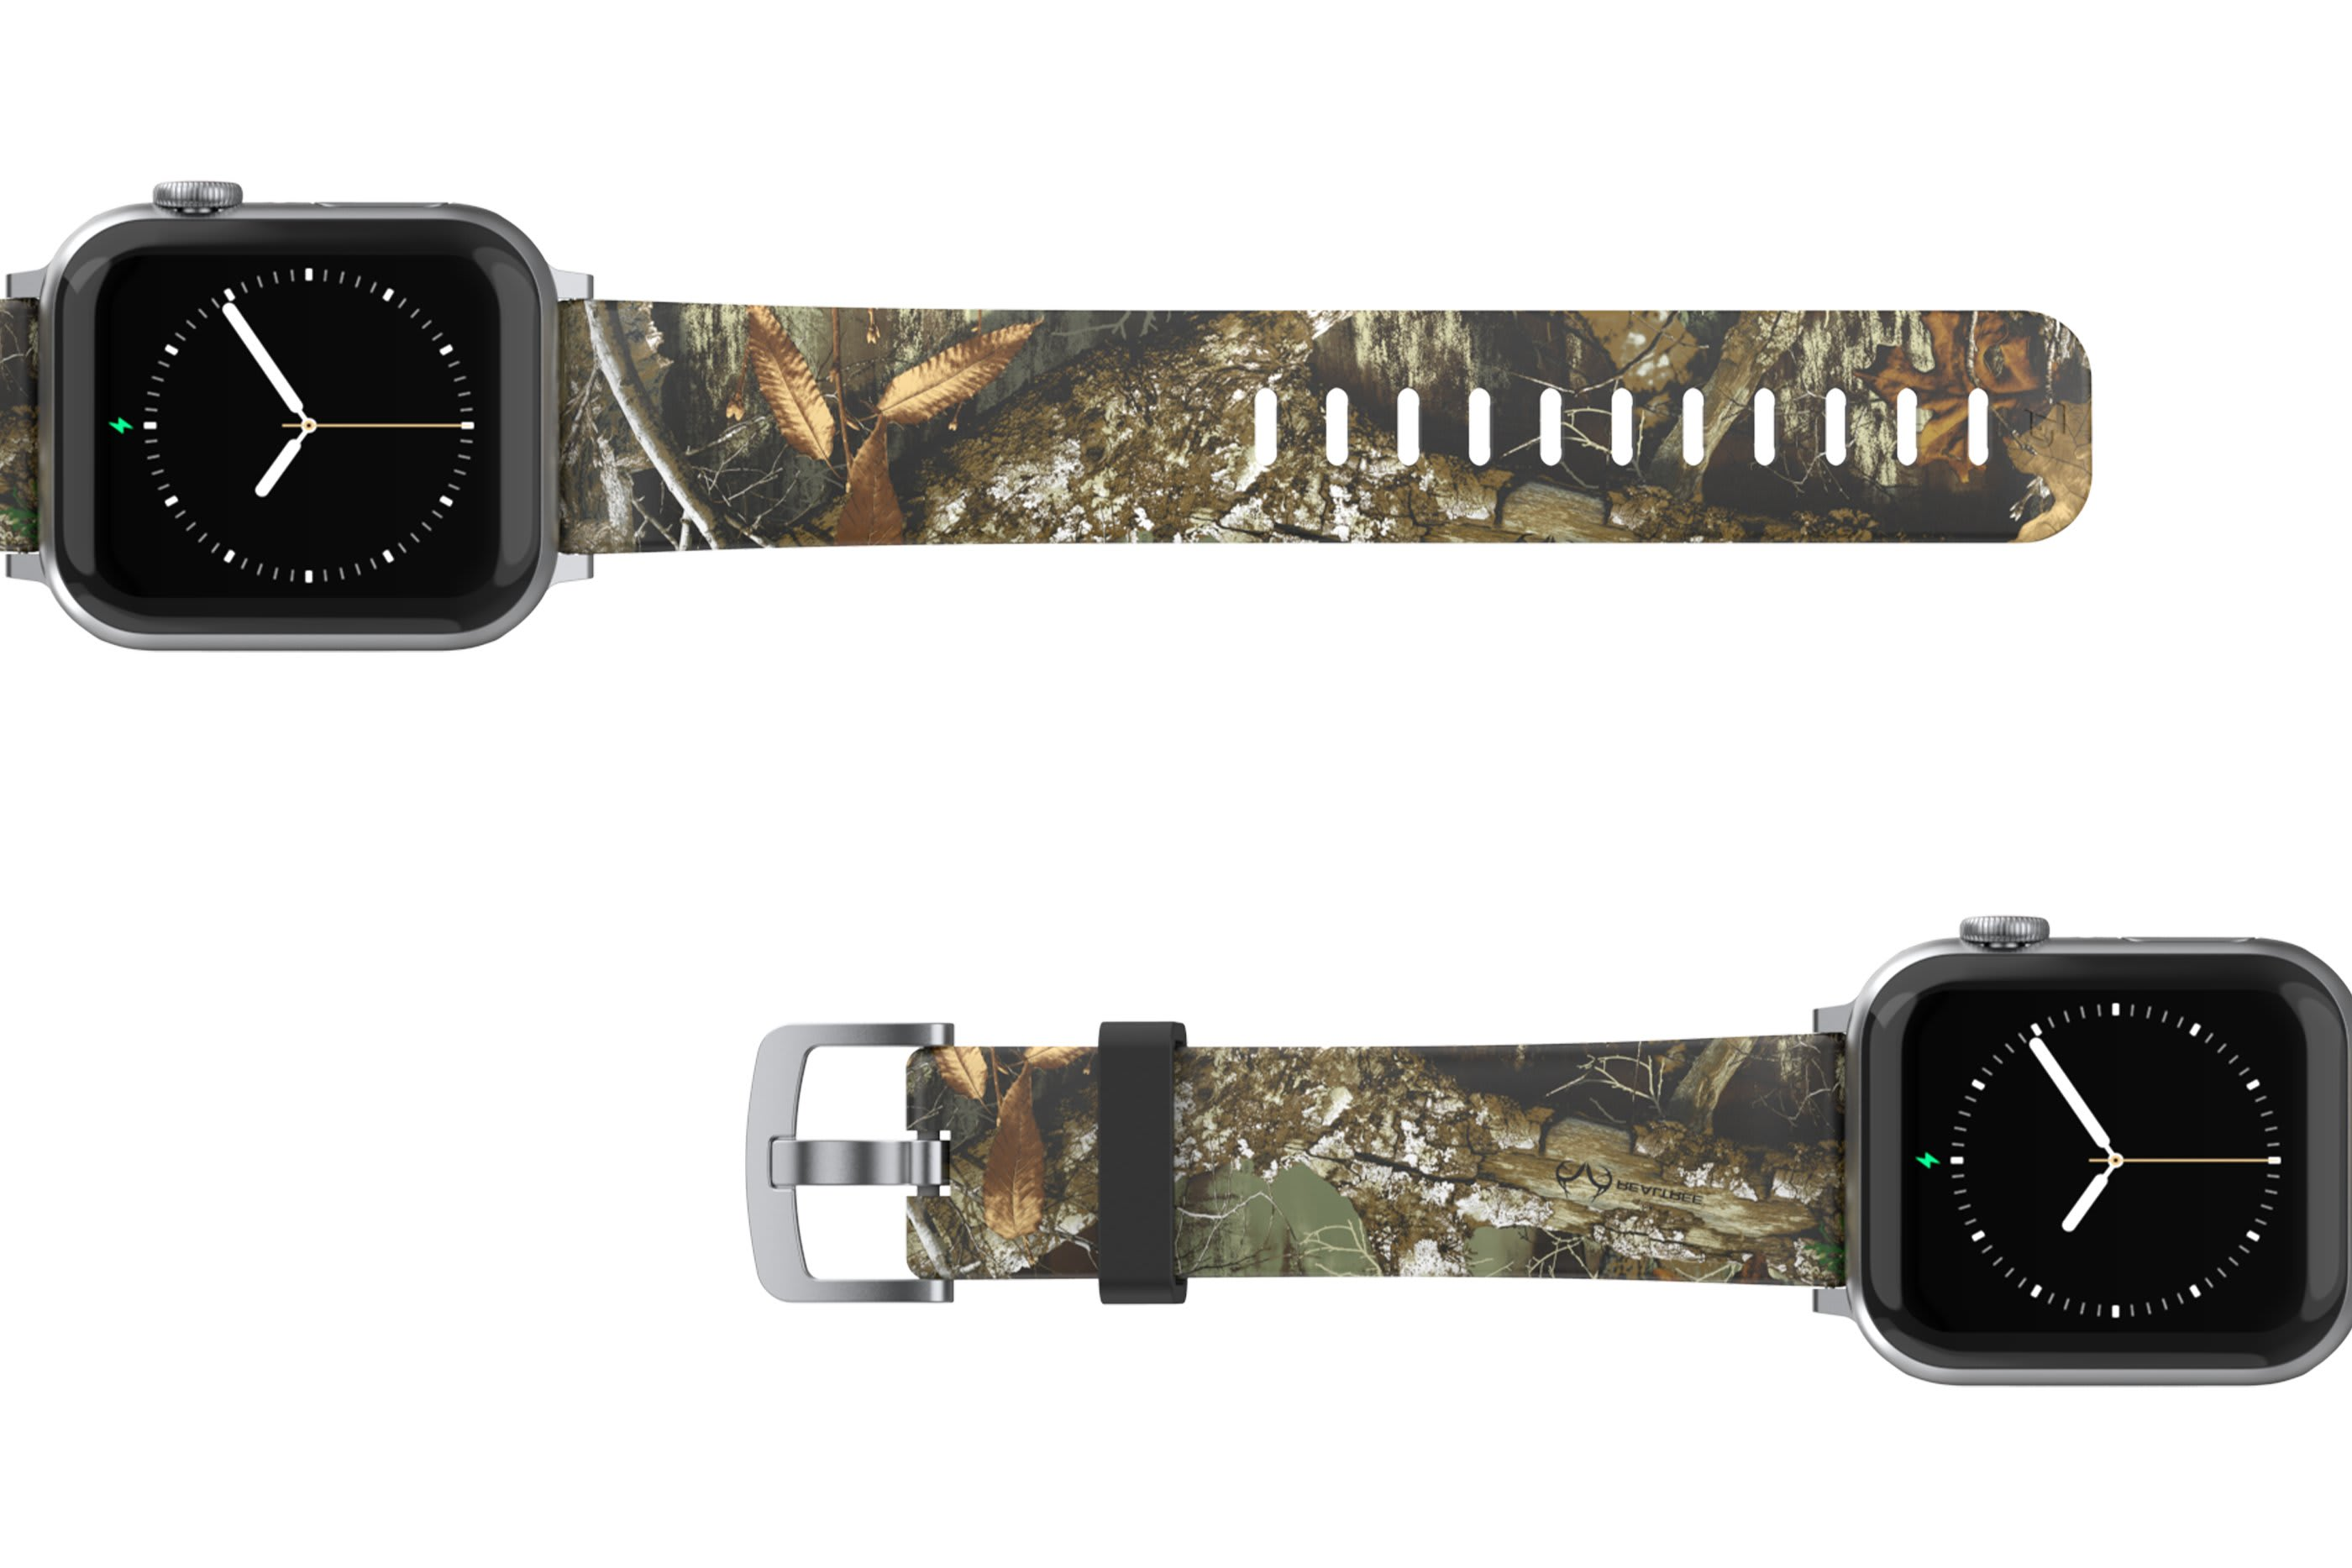 Realtree Edge Apple Watch Band with gray hardware viewed bottom up